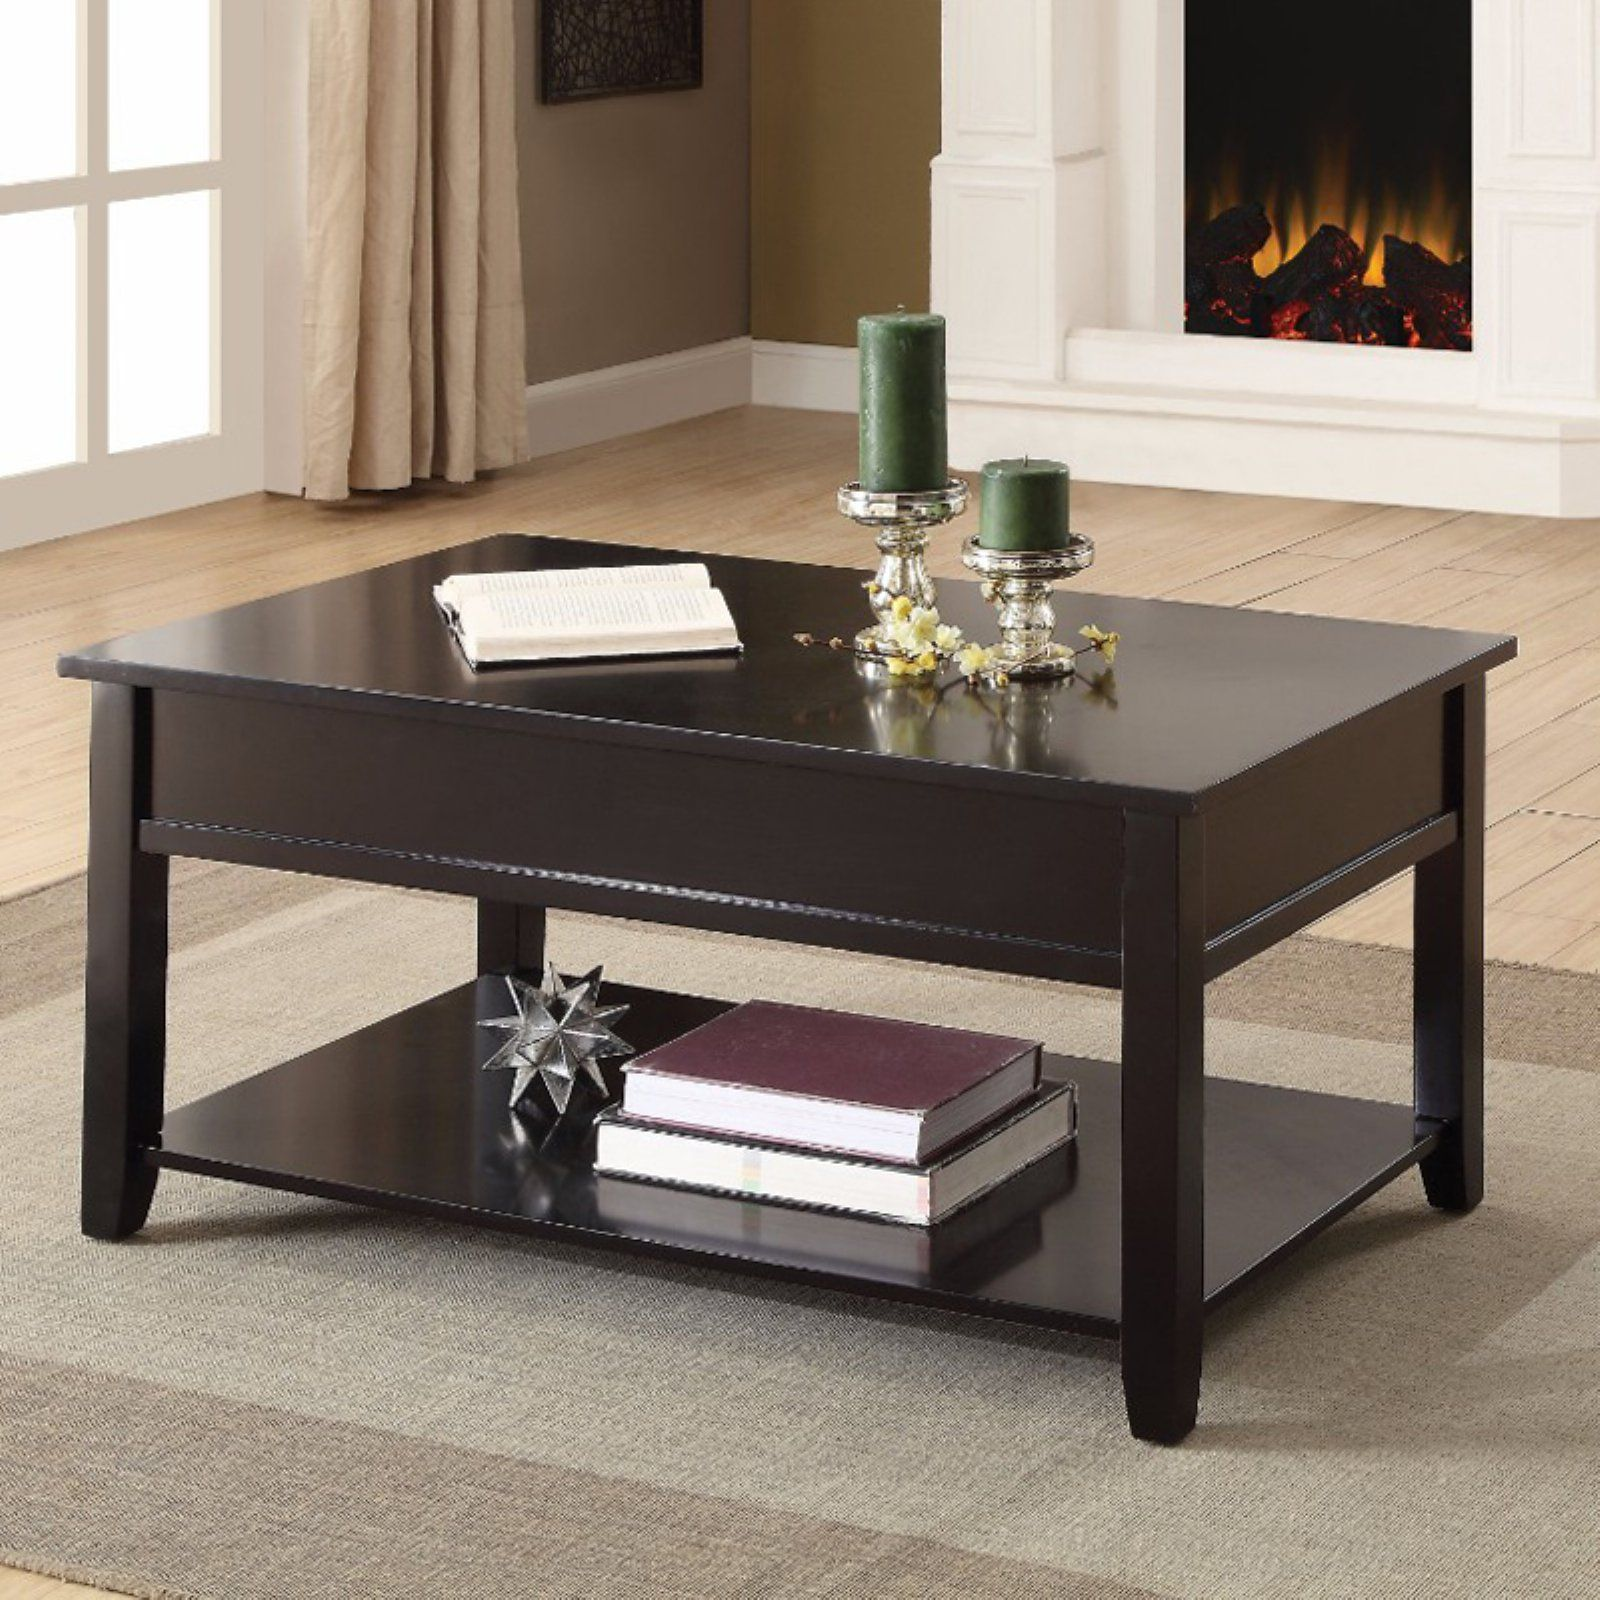 Benzara Rectangular Lift Top Coffee Table In 2019 Products